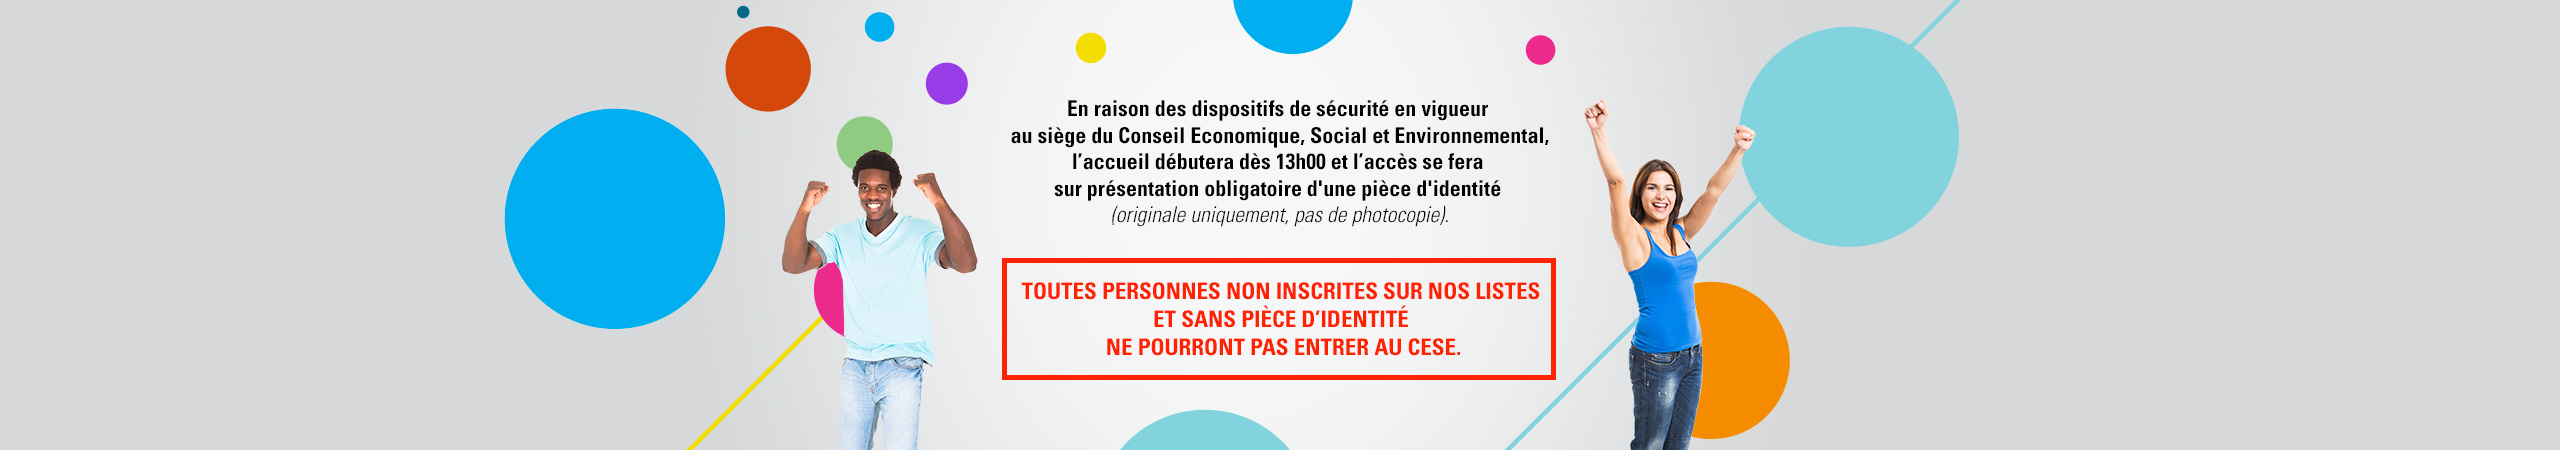 slide-dispositifs-securite-en-vigueur